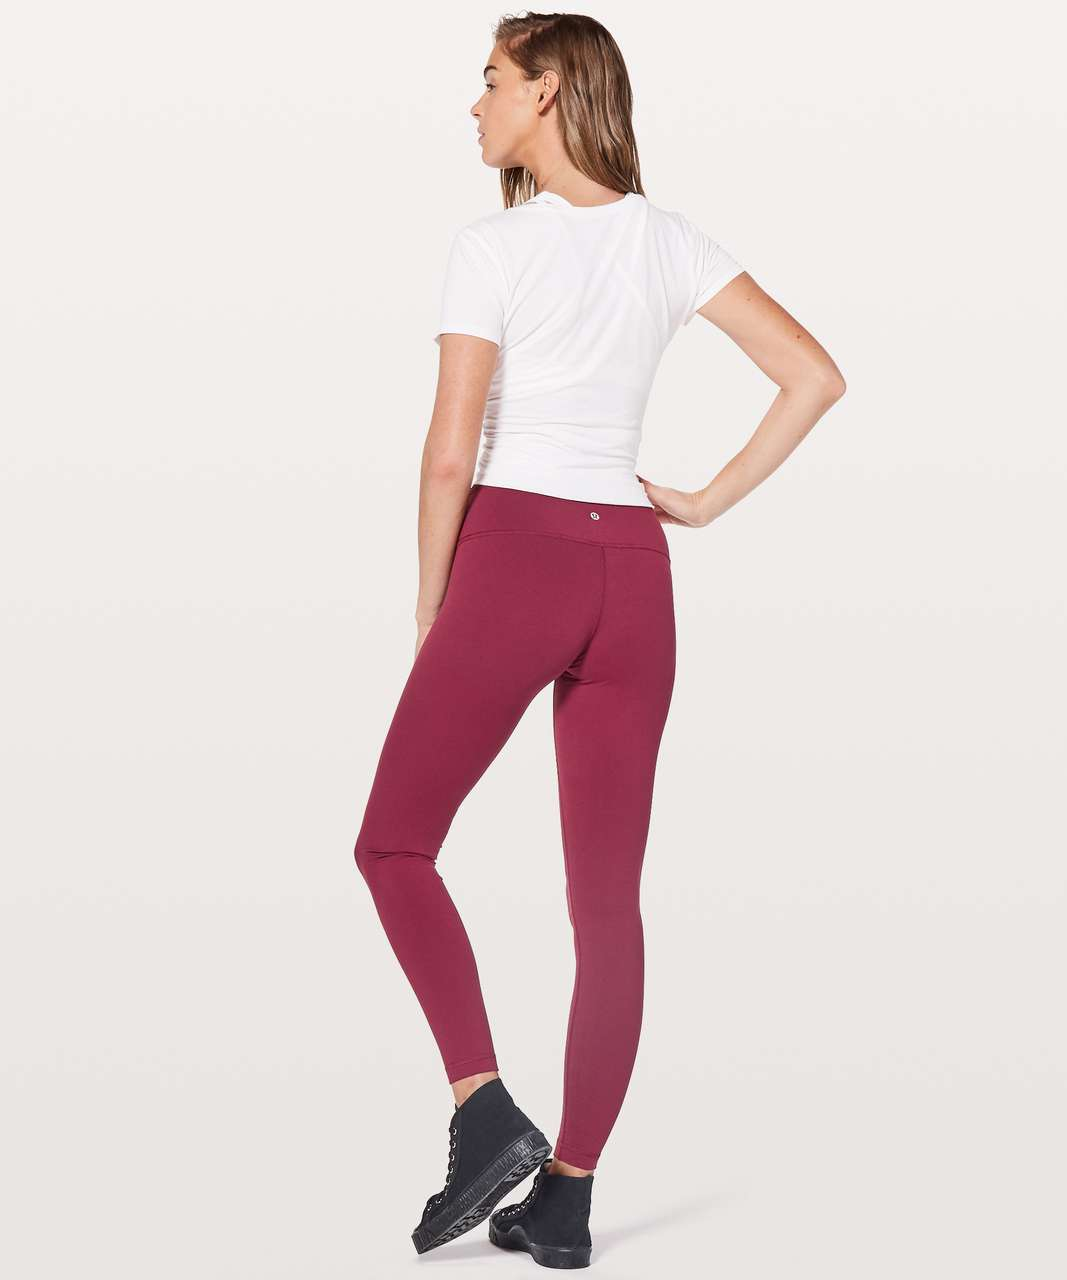 "Lululemon Wunder Under Low-Rise Tight *Full-On Luon 28"" - Ruby Wine"